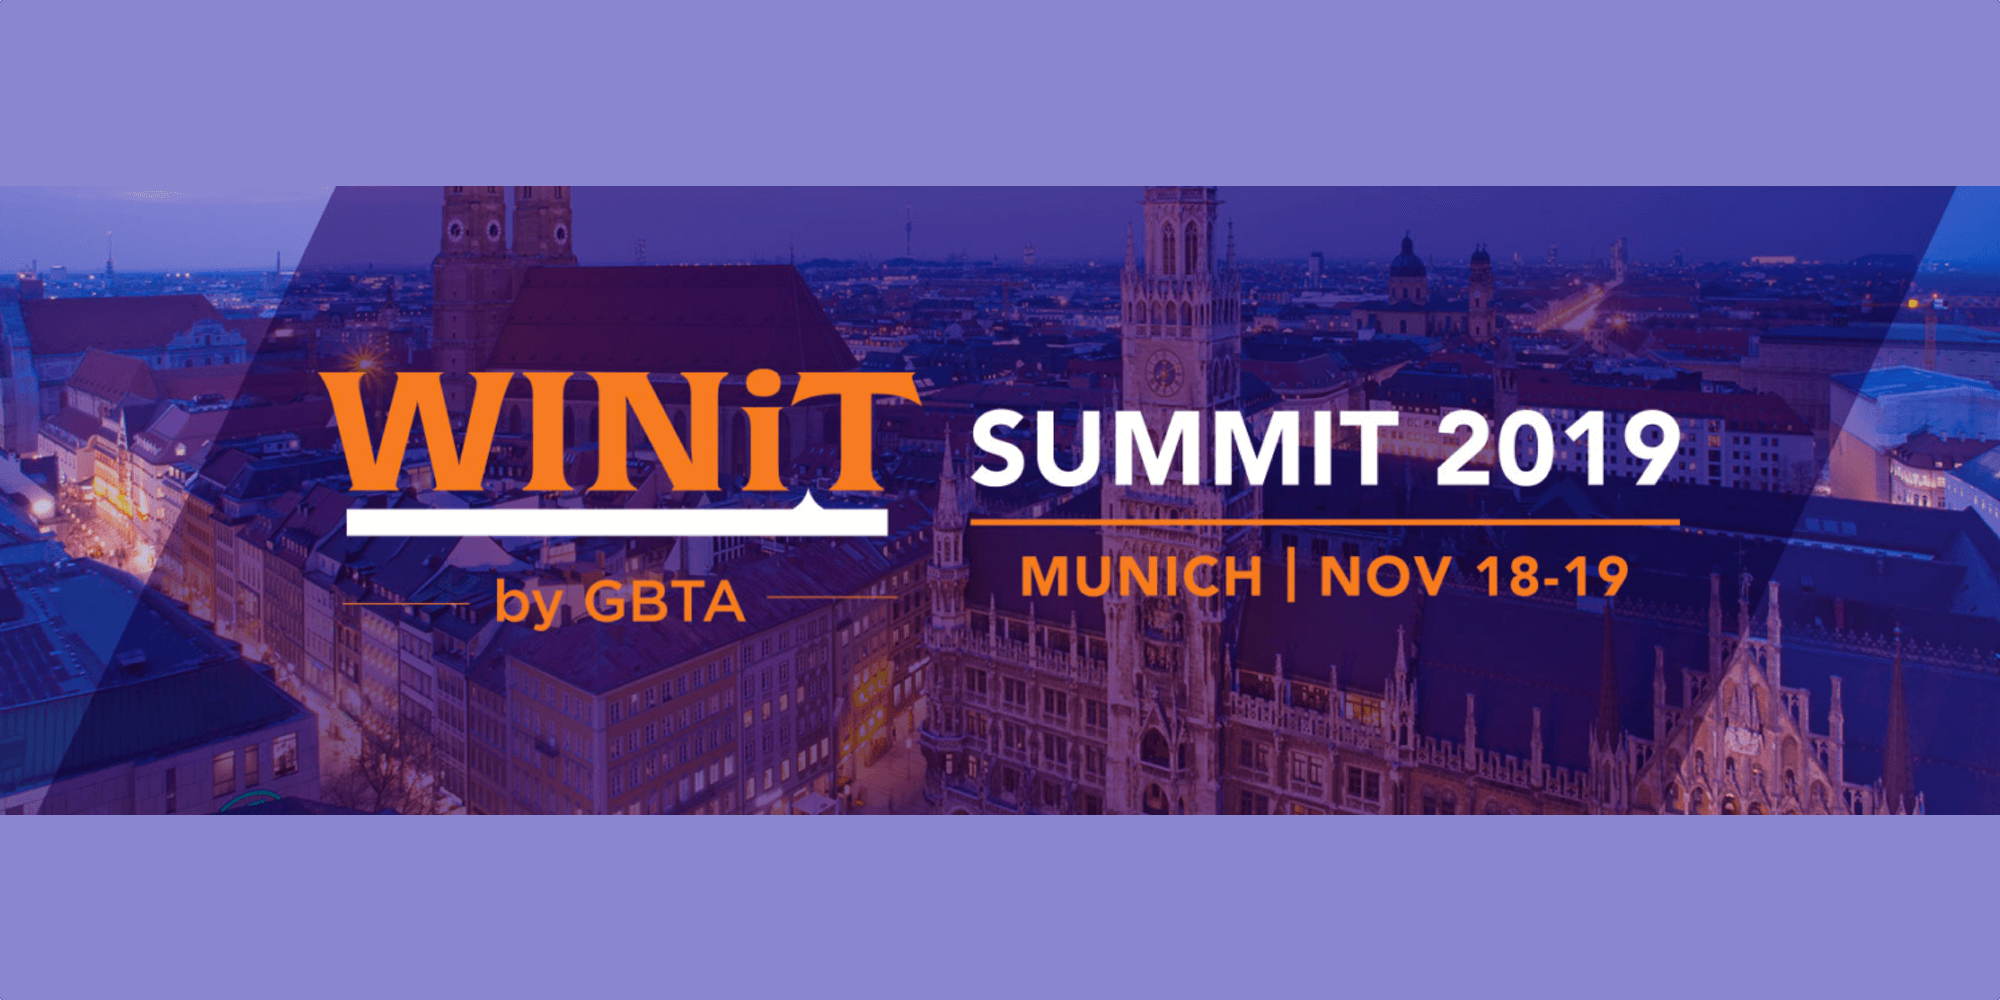 WINiT Summit 2019 - Munich